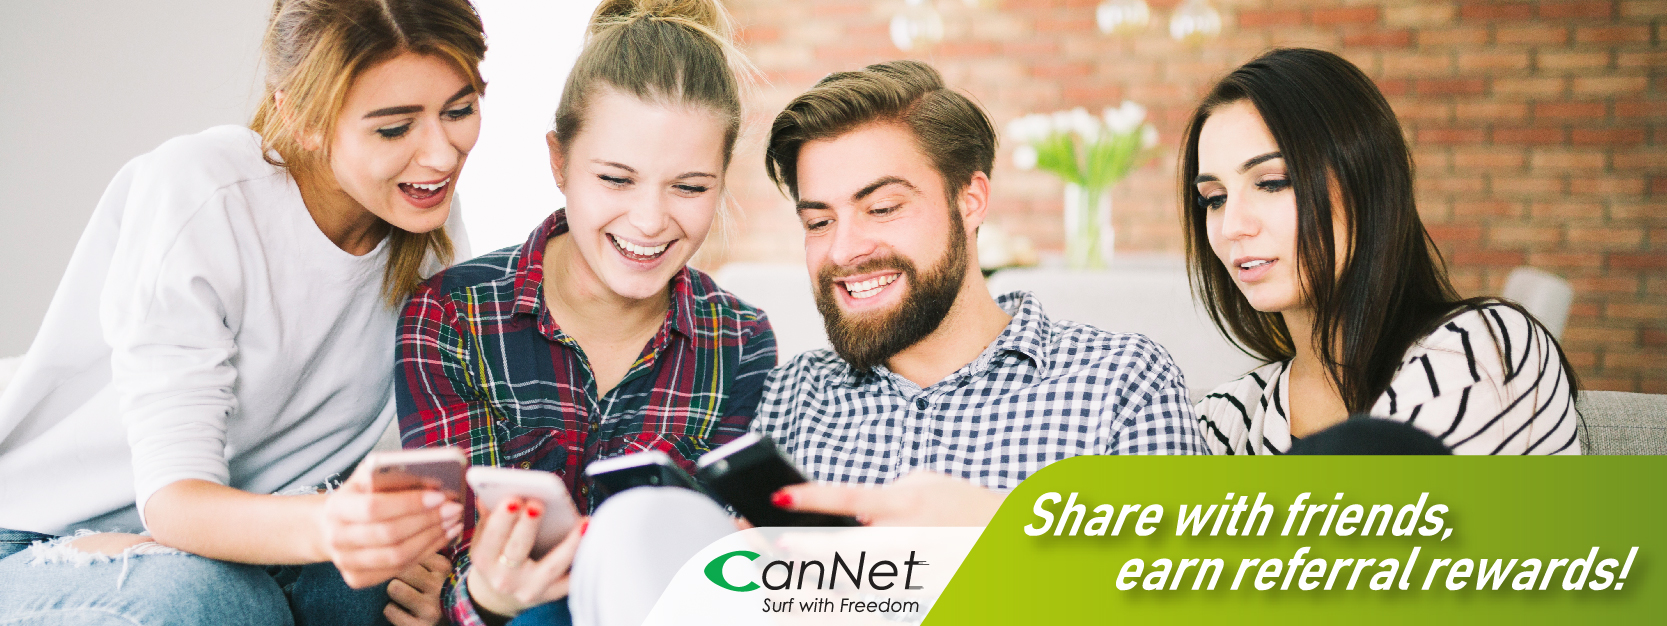 New CanNet Referral Rewards Program